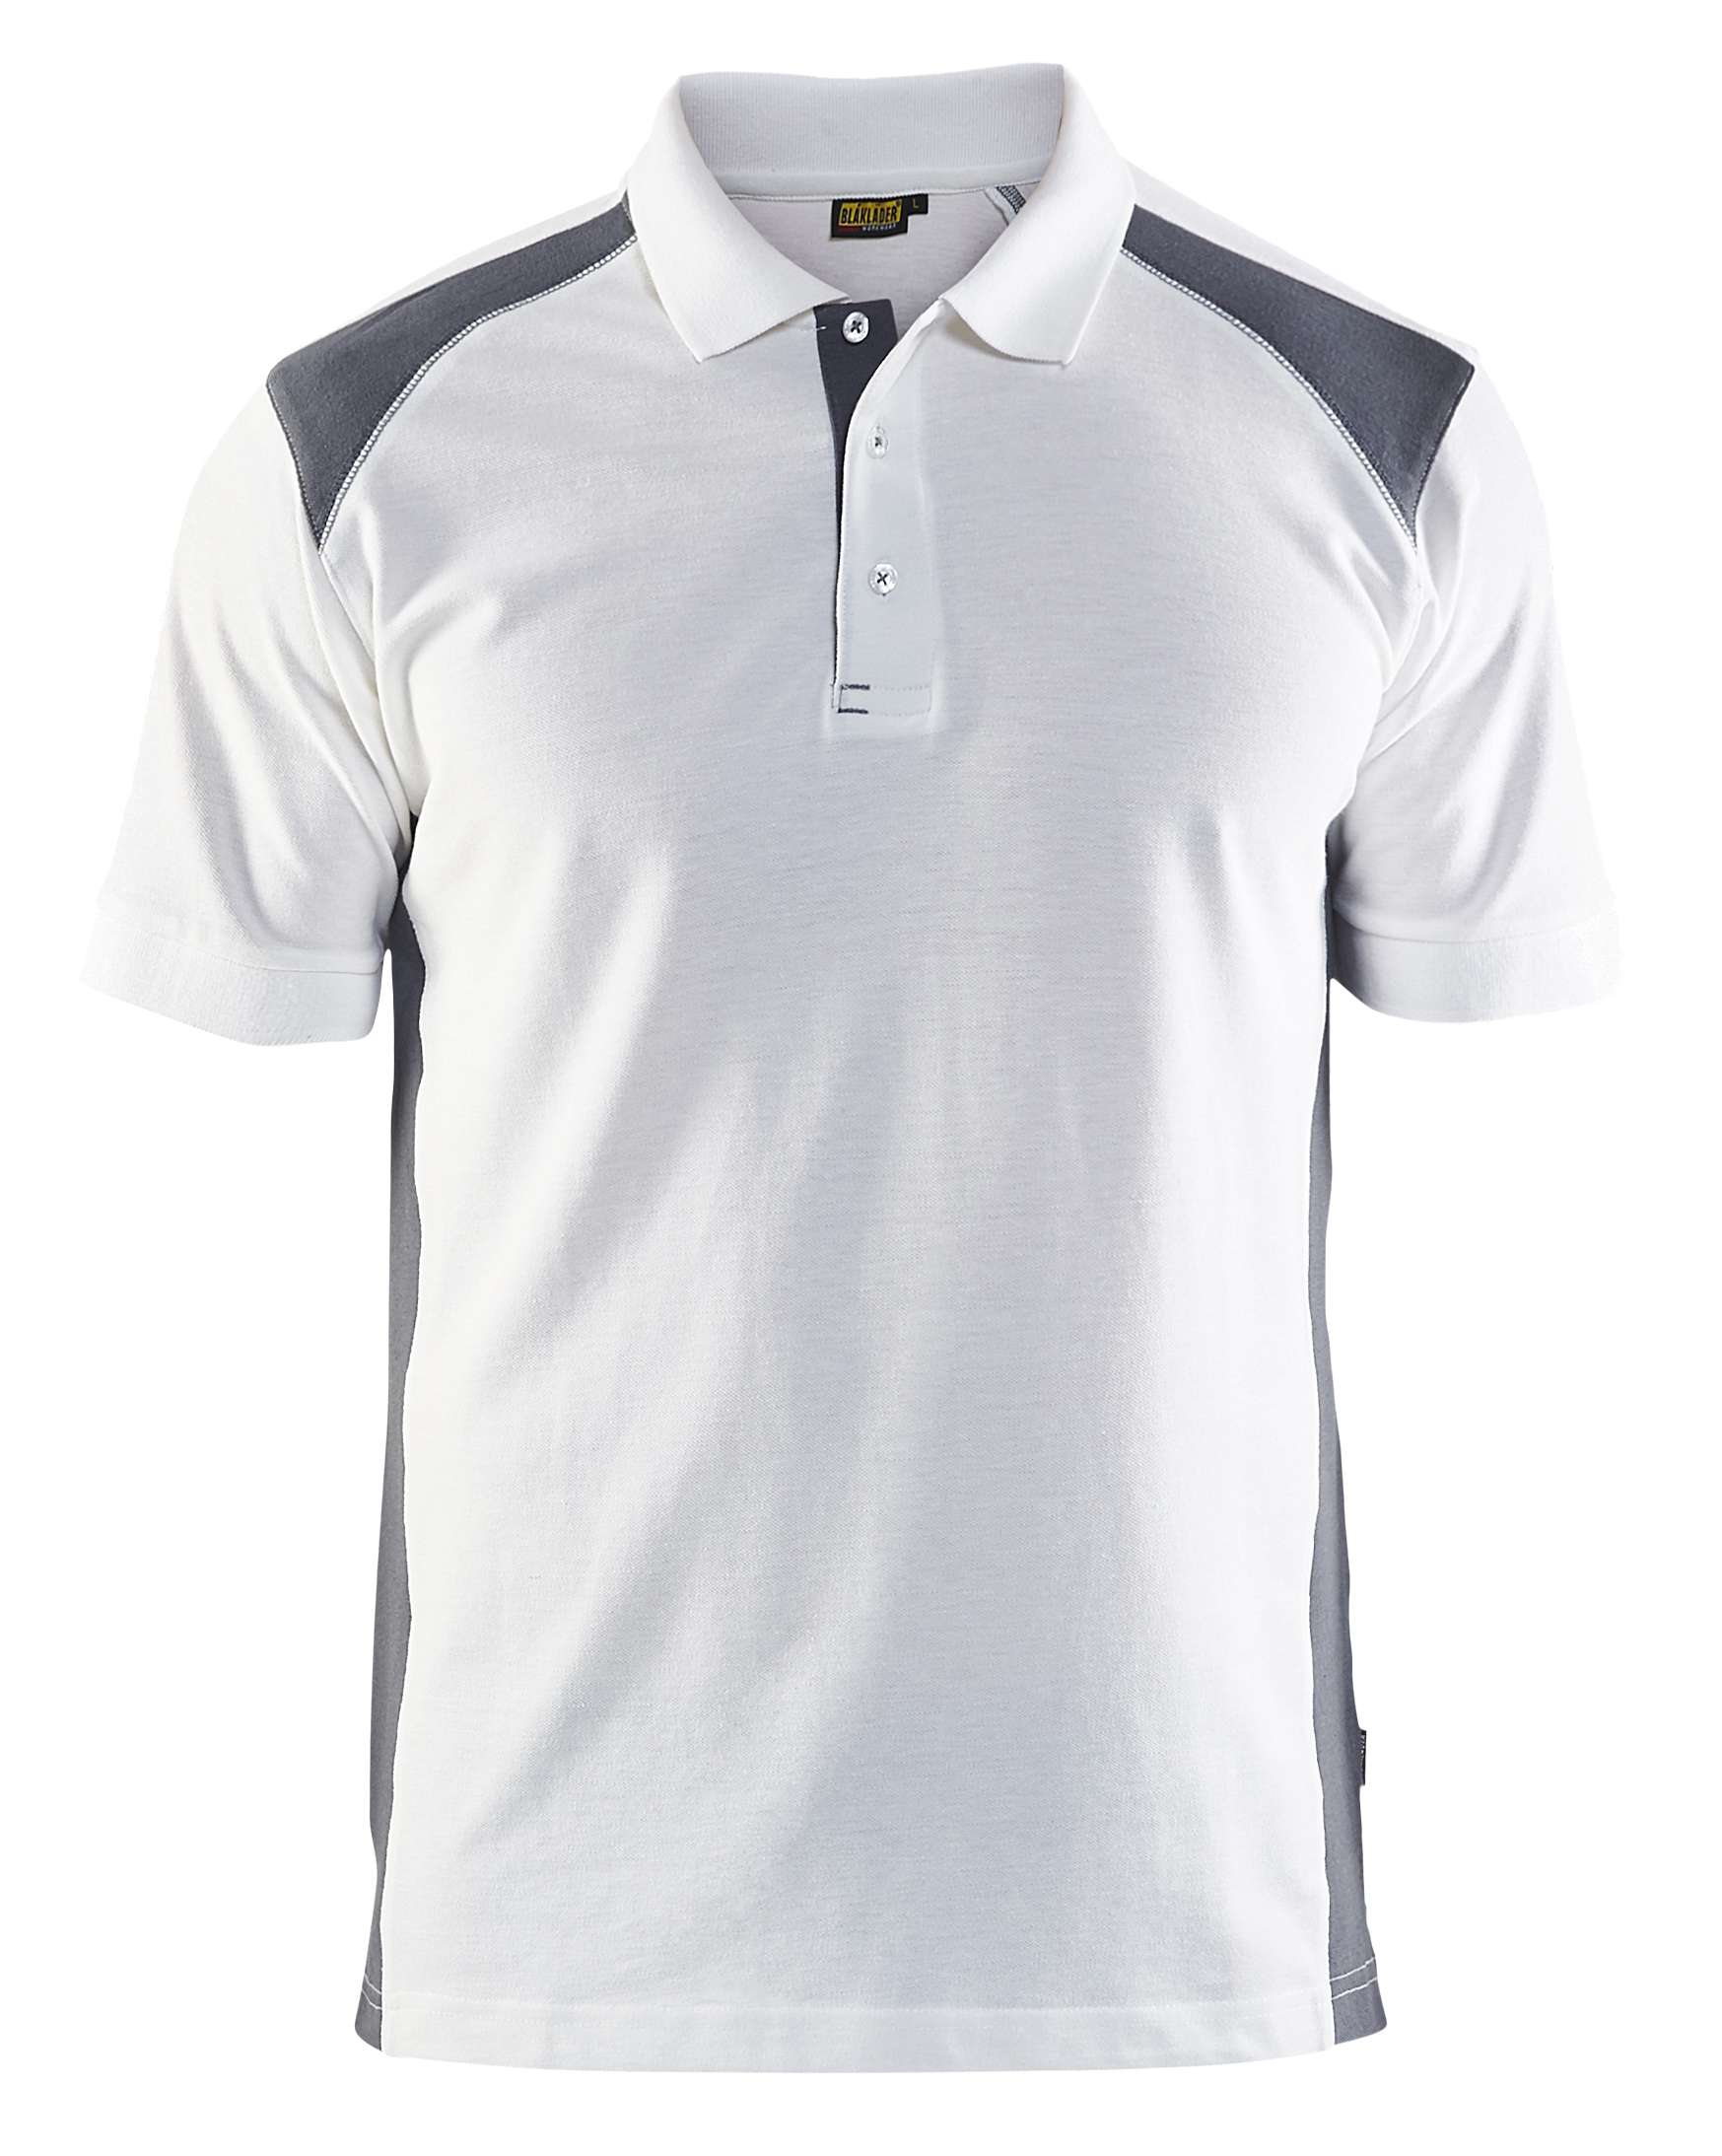 Blaklader Polo shirts 33241050 wit-grijs(1094)